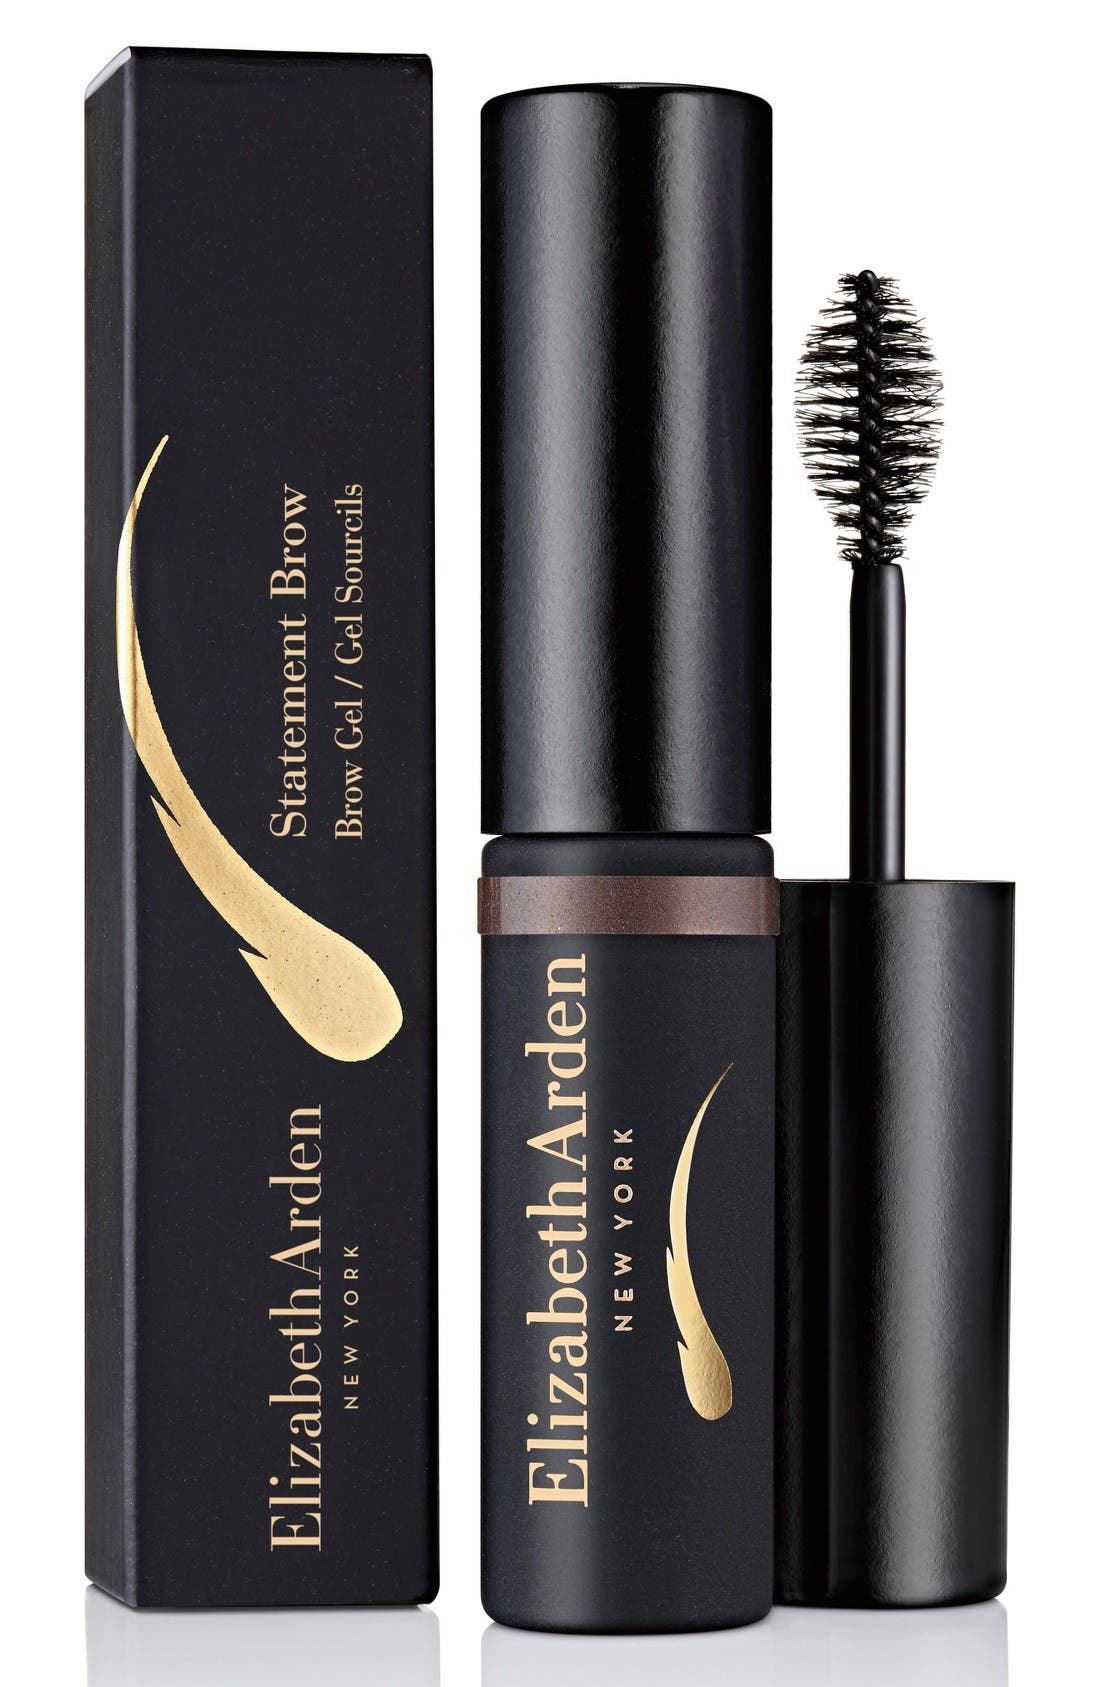 Main Image - Elizabeth Arden Eyes Wide Open Statement Brow Defining Gel